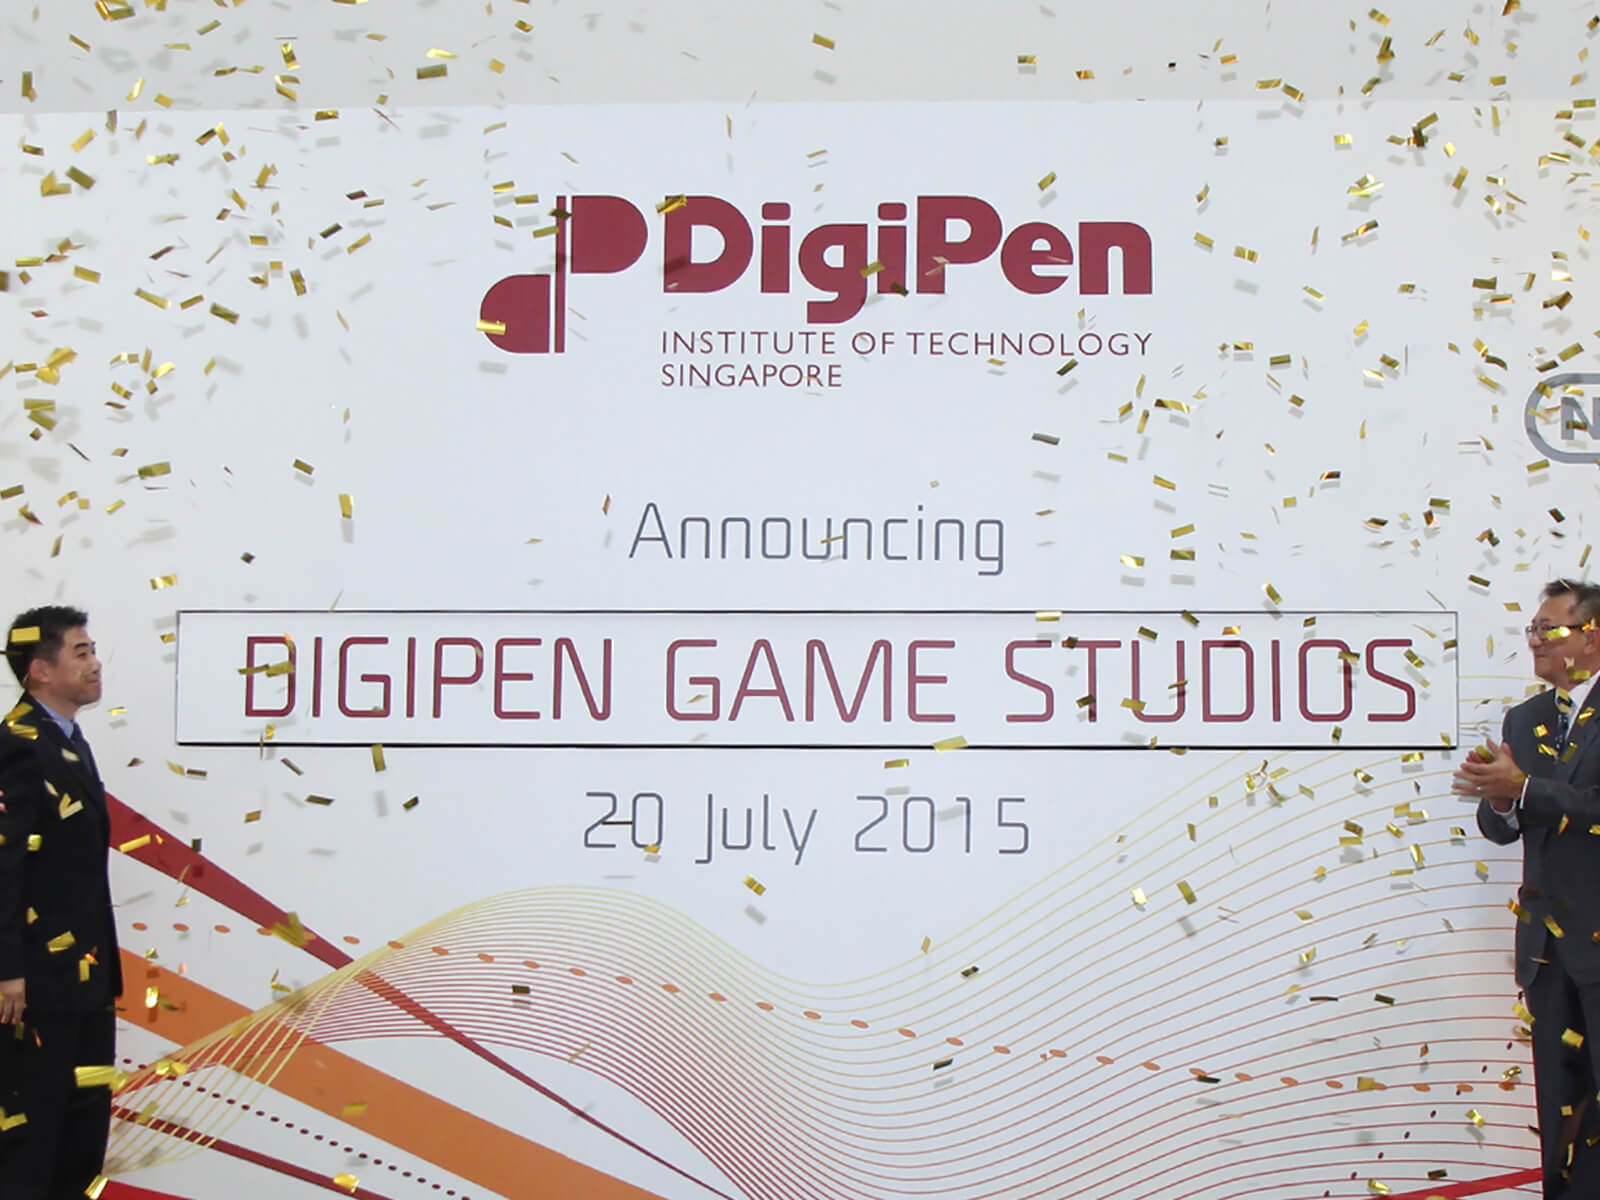 Representatives of DigiPen applaud the unveiling of the DigiPen Game Studios onstage as gold confetti falls from above